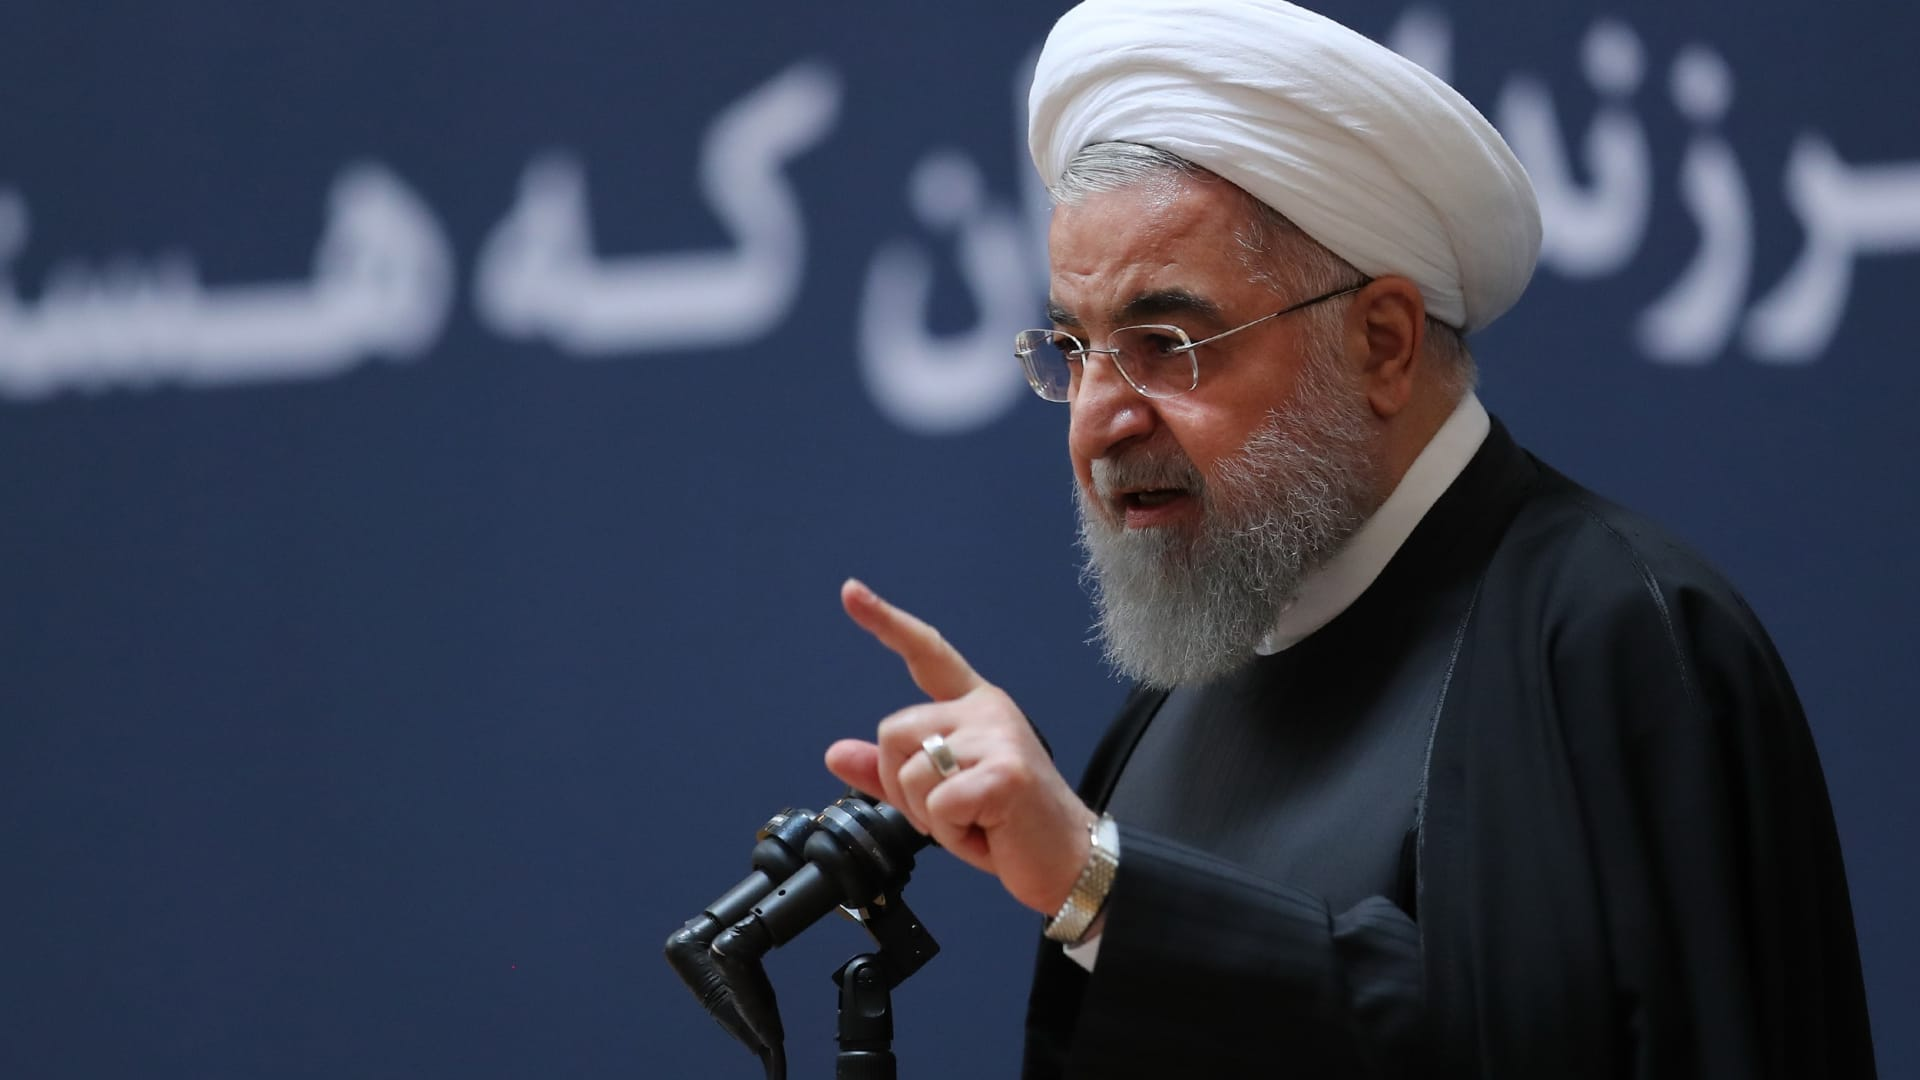 Iranian President Hassan Rouhani makes a speech during a ceremony in Tehran, Iran on January 10, 2019.